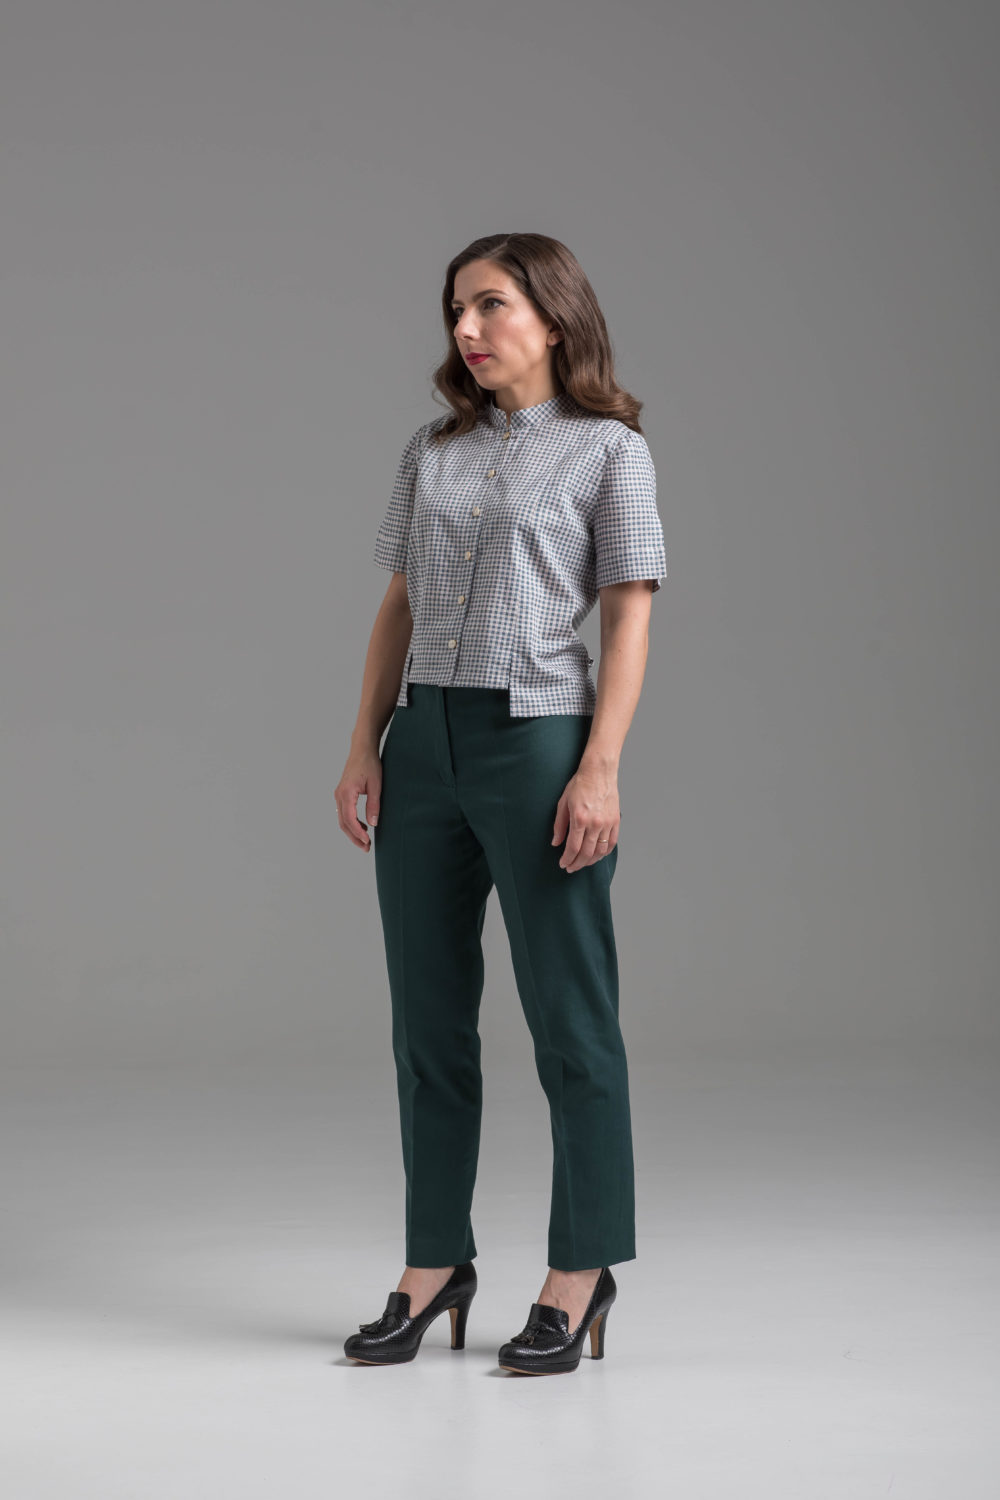 Trousers capri pants pattern camimade ecorce green